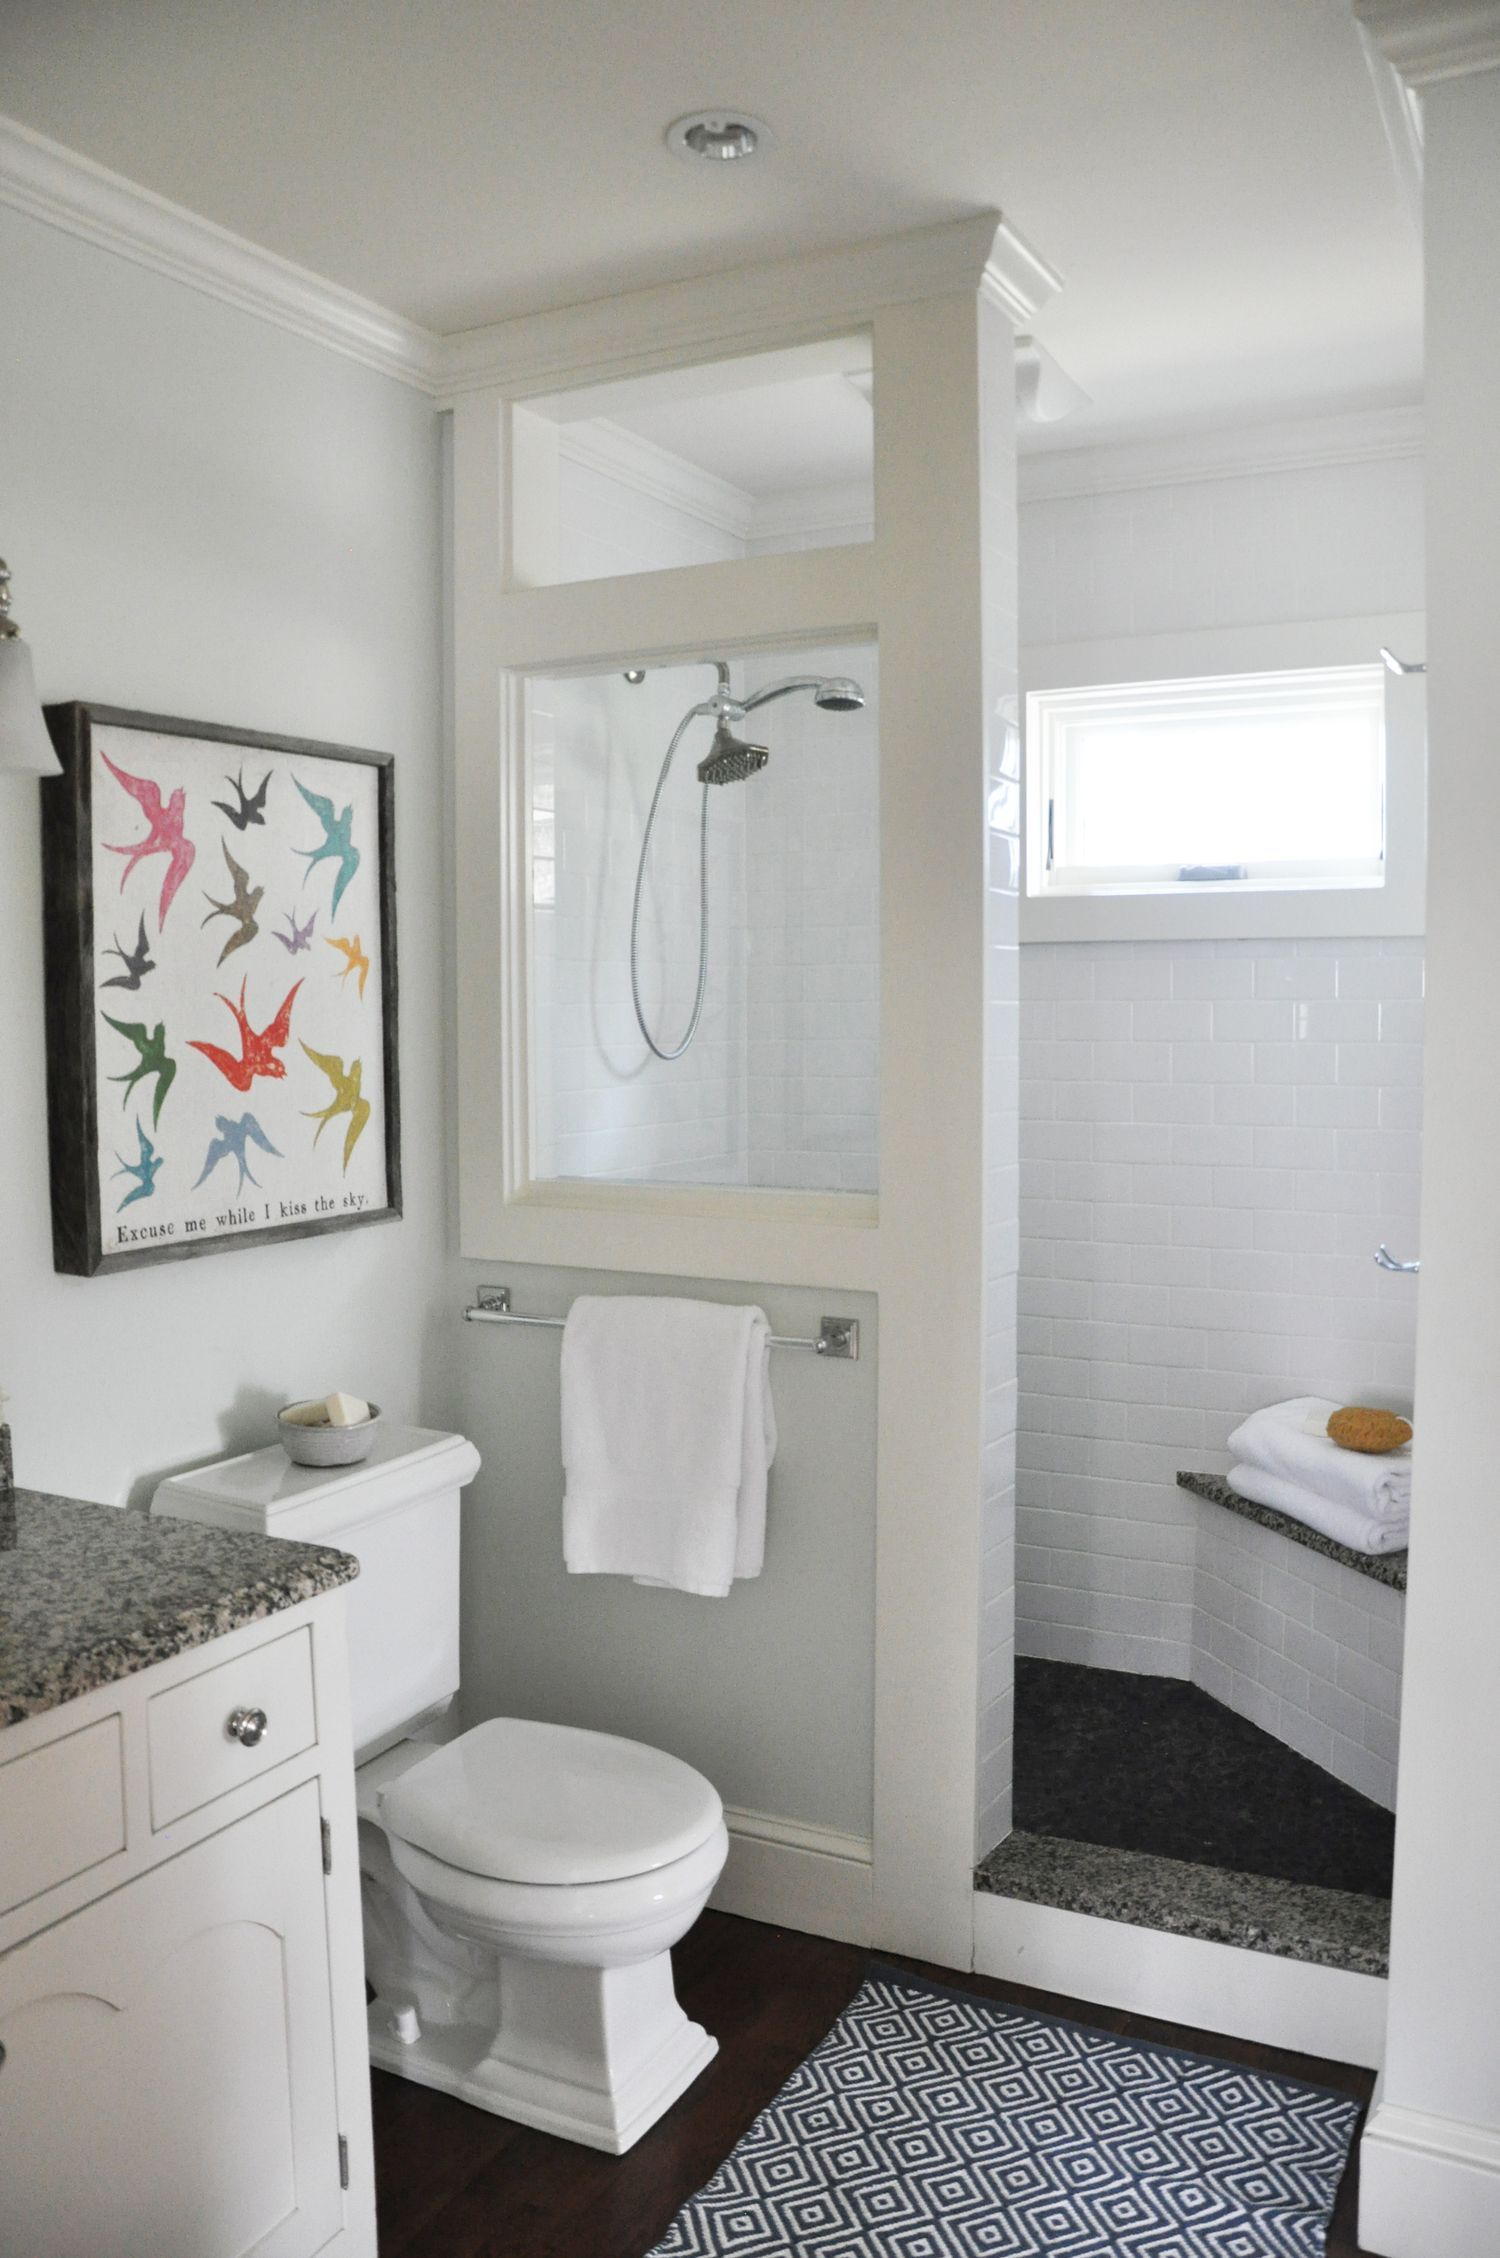 photos of remodeled bathrooms%0A Bathroom remodel with custom shower  DIY bathroom how to plans available at  Teaselwood Design